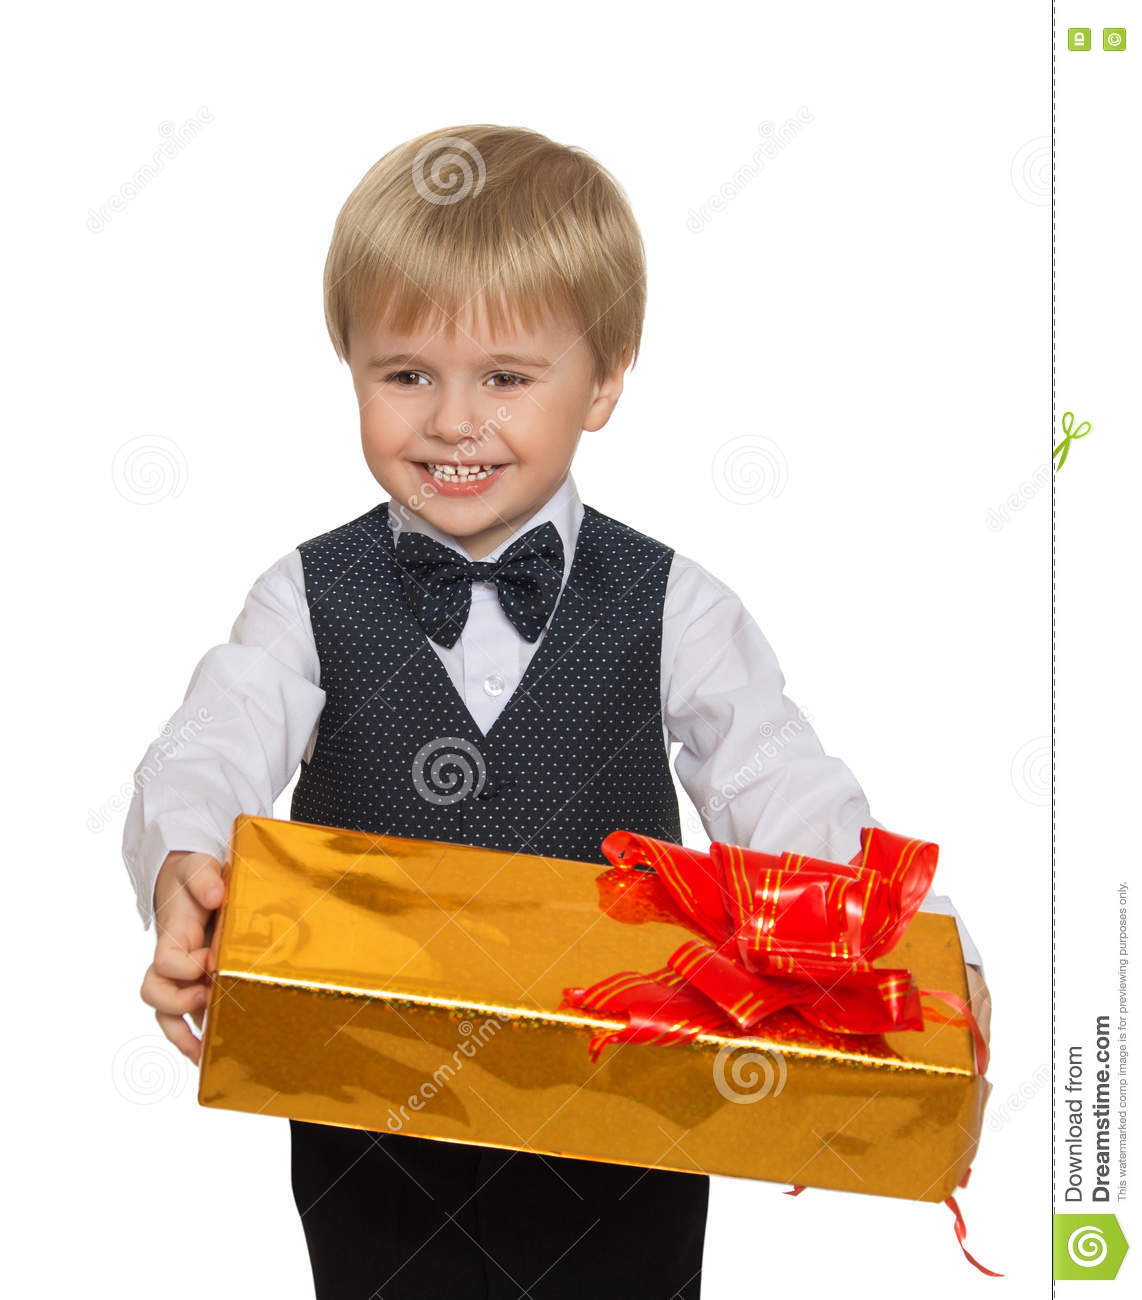 ad975ea16e17 Cute little blonde boy in suit with bow tie holds in his hands the box.  close-up - Isolated on white background